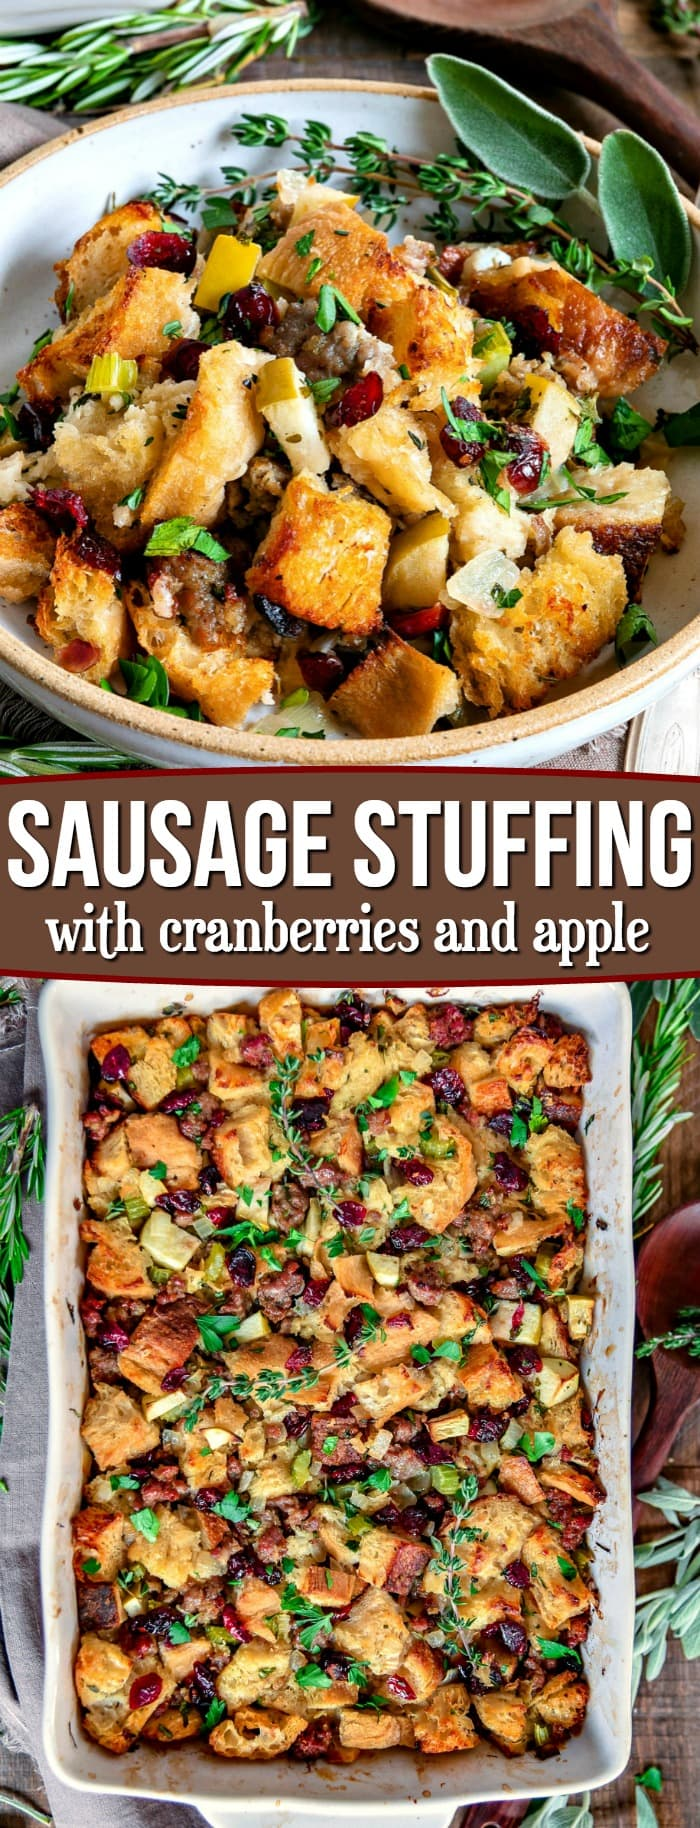 stuffing-recipe-collage